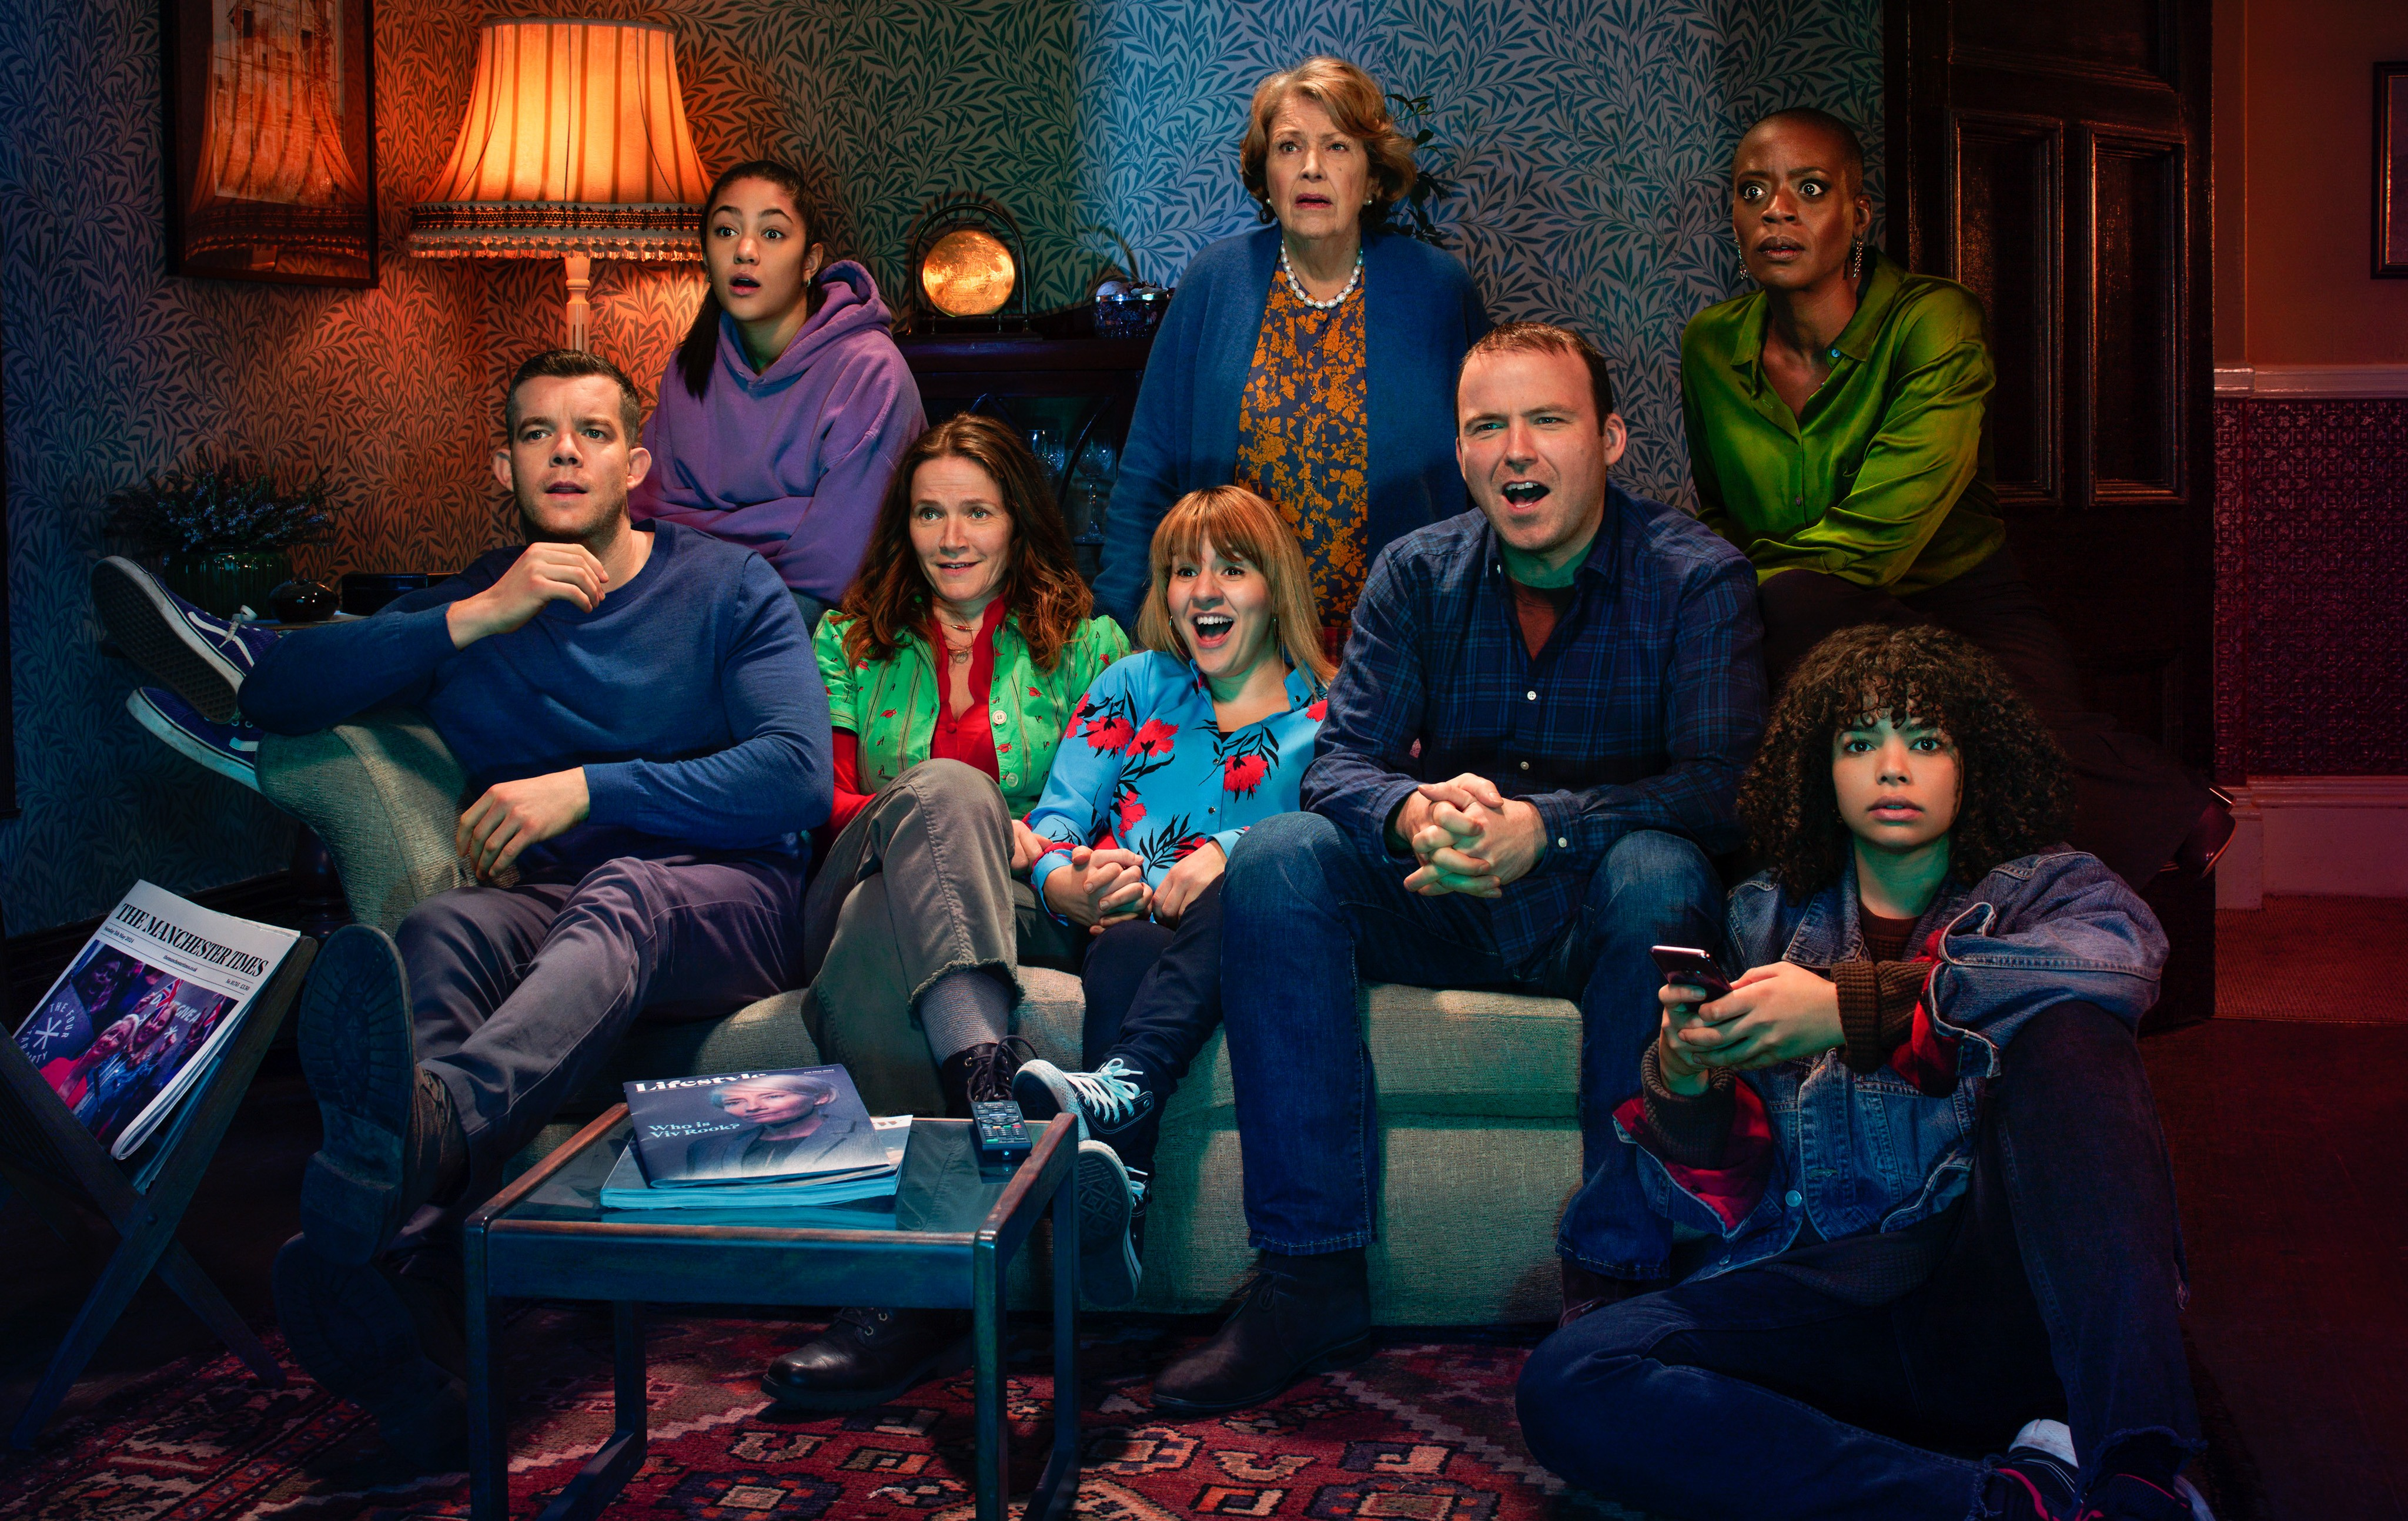 The cast of Years and Years (L-R): Daniel (Russell Tovey), Ruby (Jade Alleyne), Edith (Jessica Hynes), Rosie (Ruth Madeley), Muriel (Anne Reid), Stephen (Rory Kinnear), Celeste (T'nia Miller), Bethany (Lydia West)